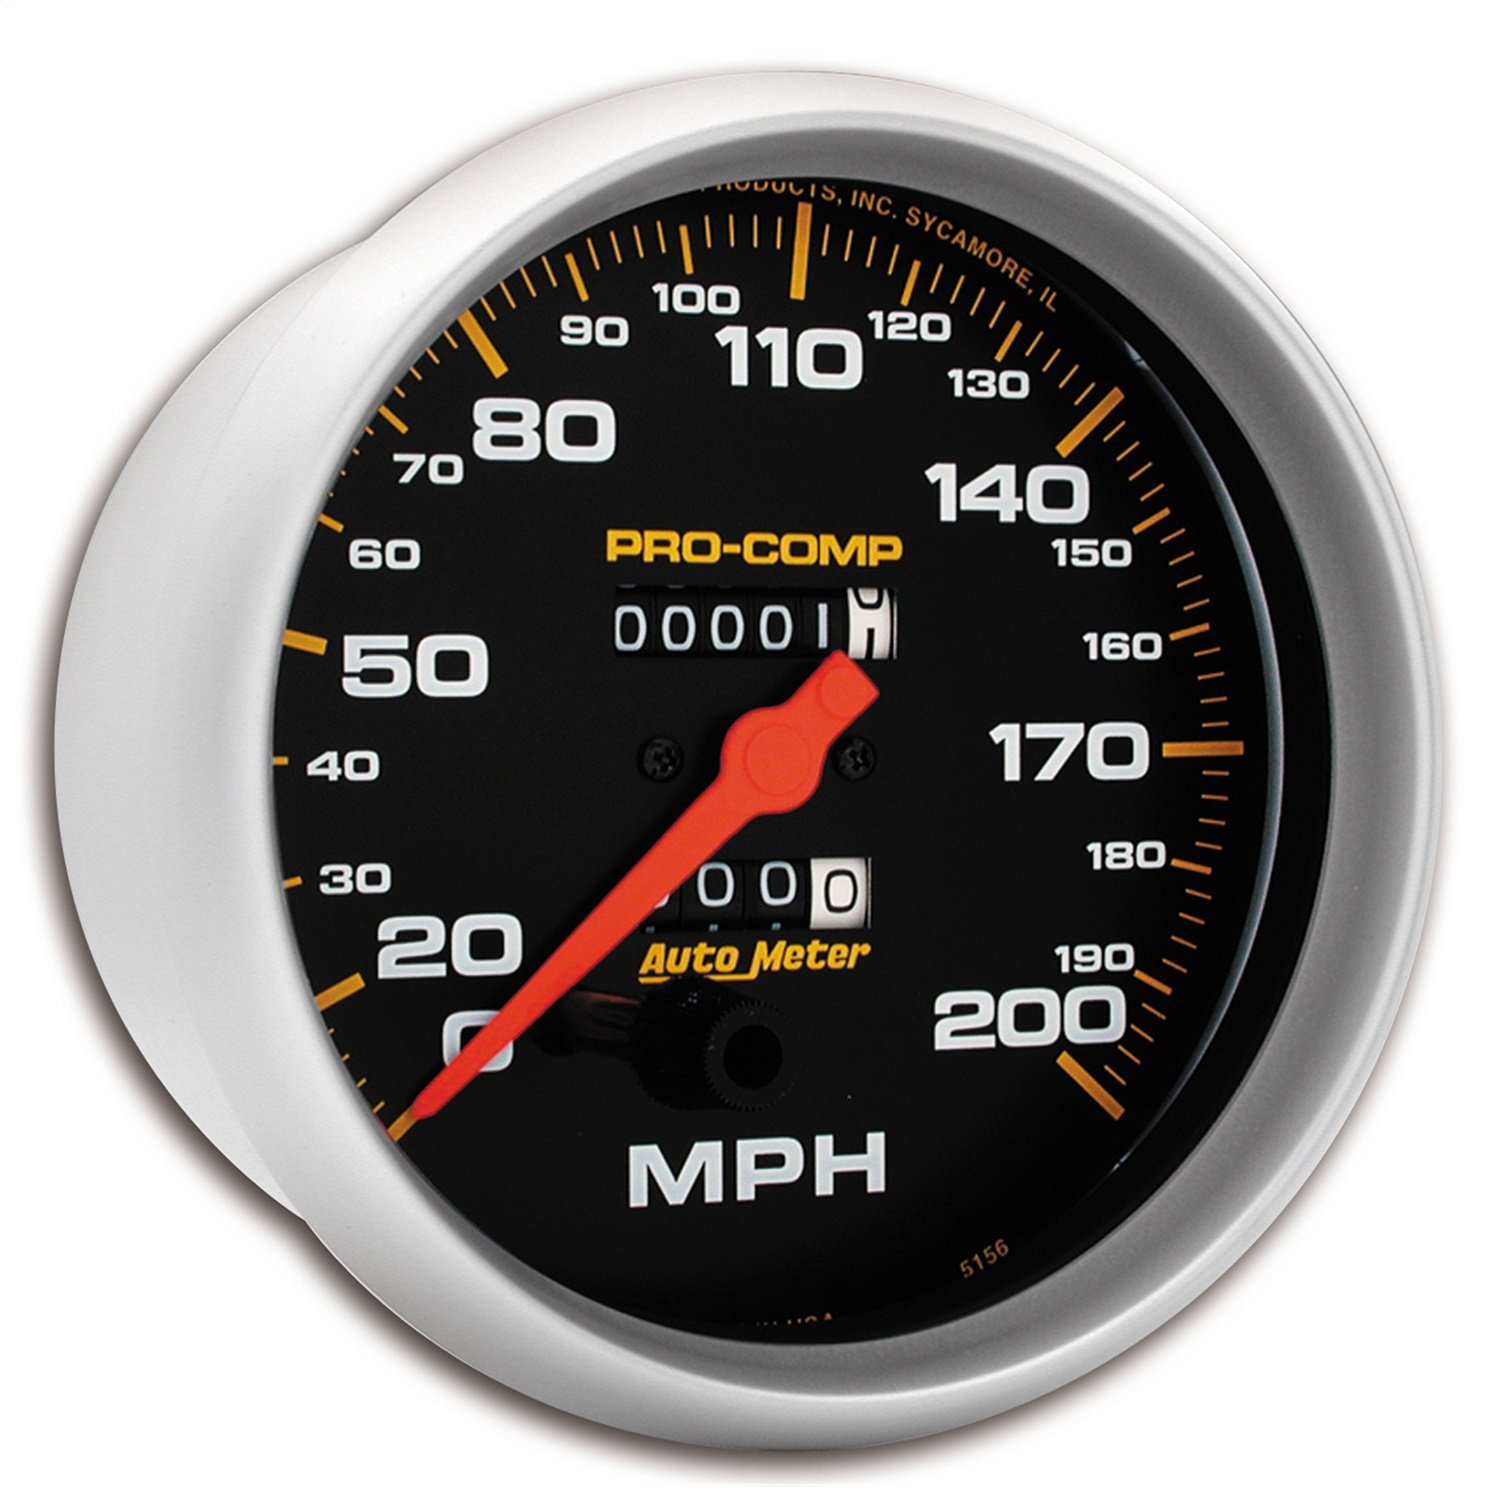 AUTO METER 5156 Pro-Comp Mechanical in-Dash Speedometer by AUTO METER